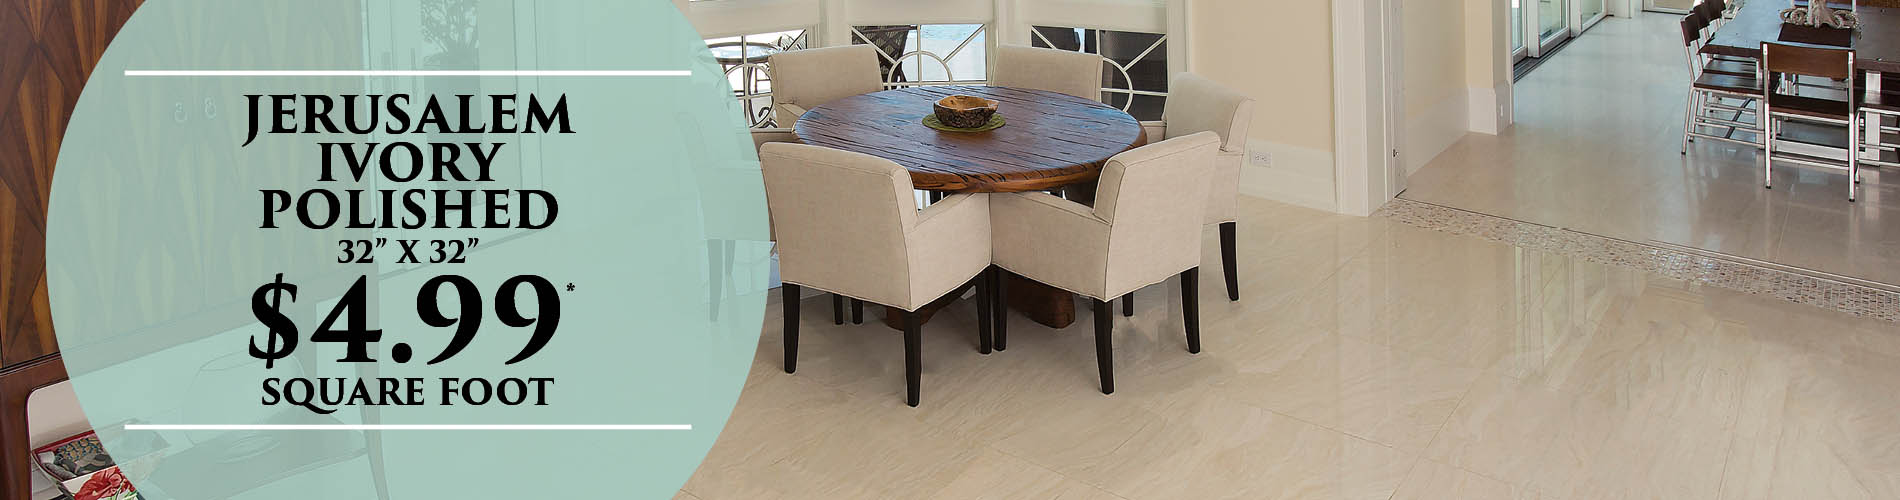 Flooring On Sale - Naples Largest Selection of Floor Covering with ...